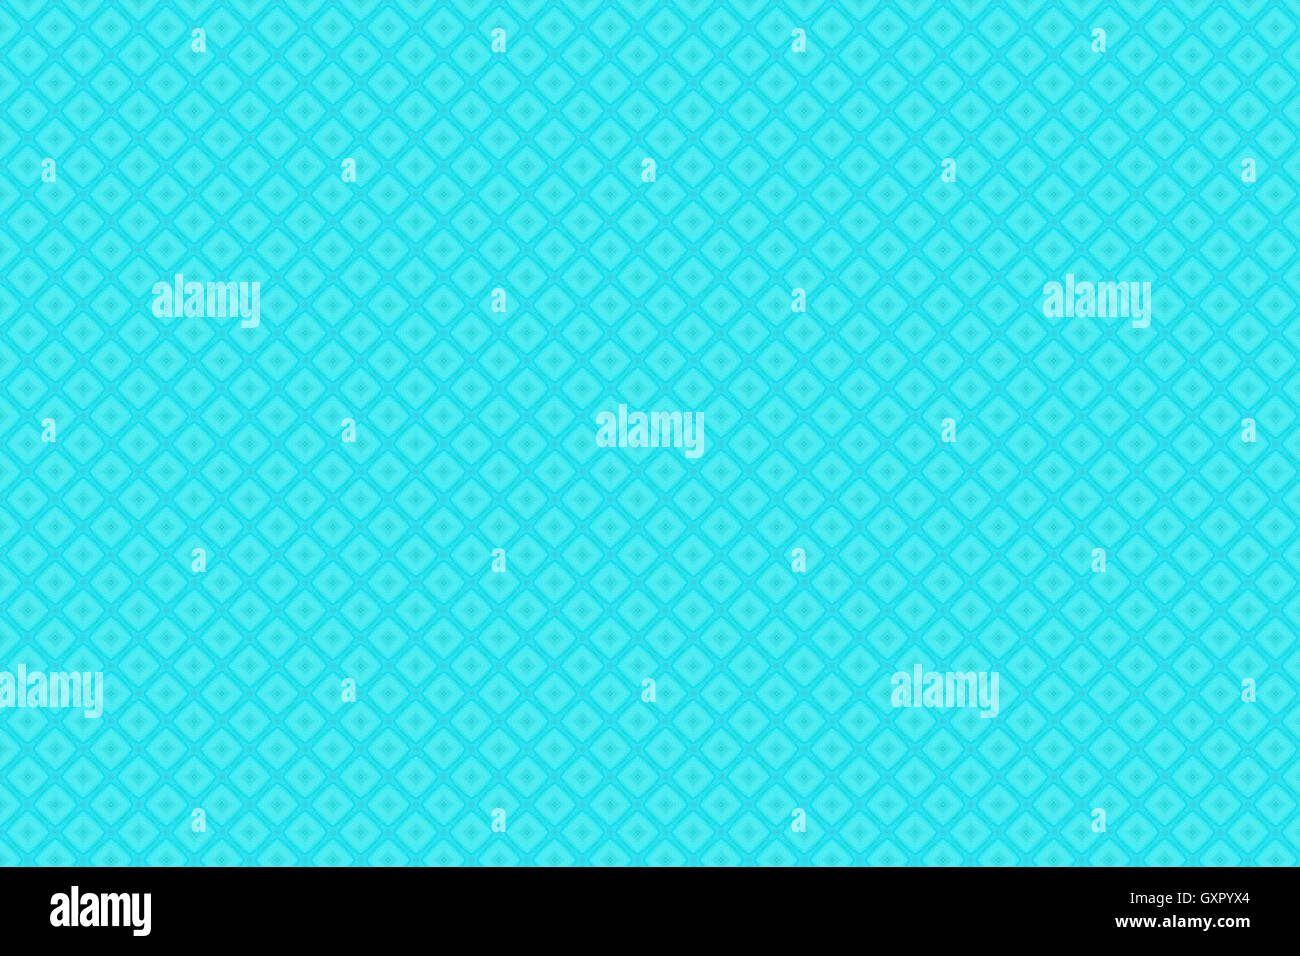 cyan wallpaper background texture - Stock Image